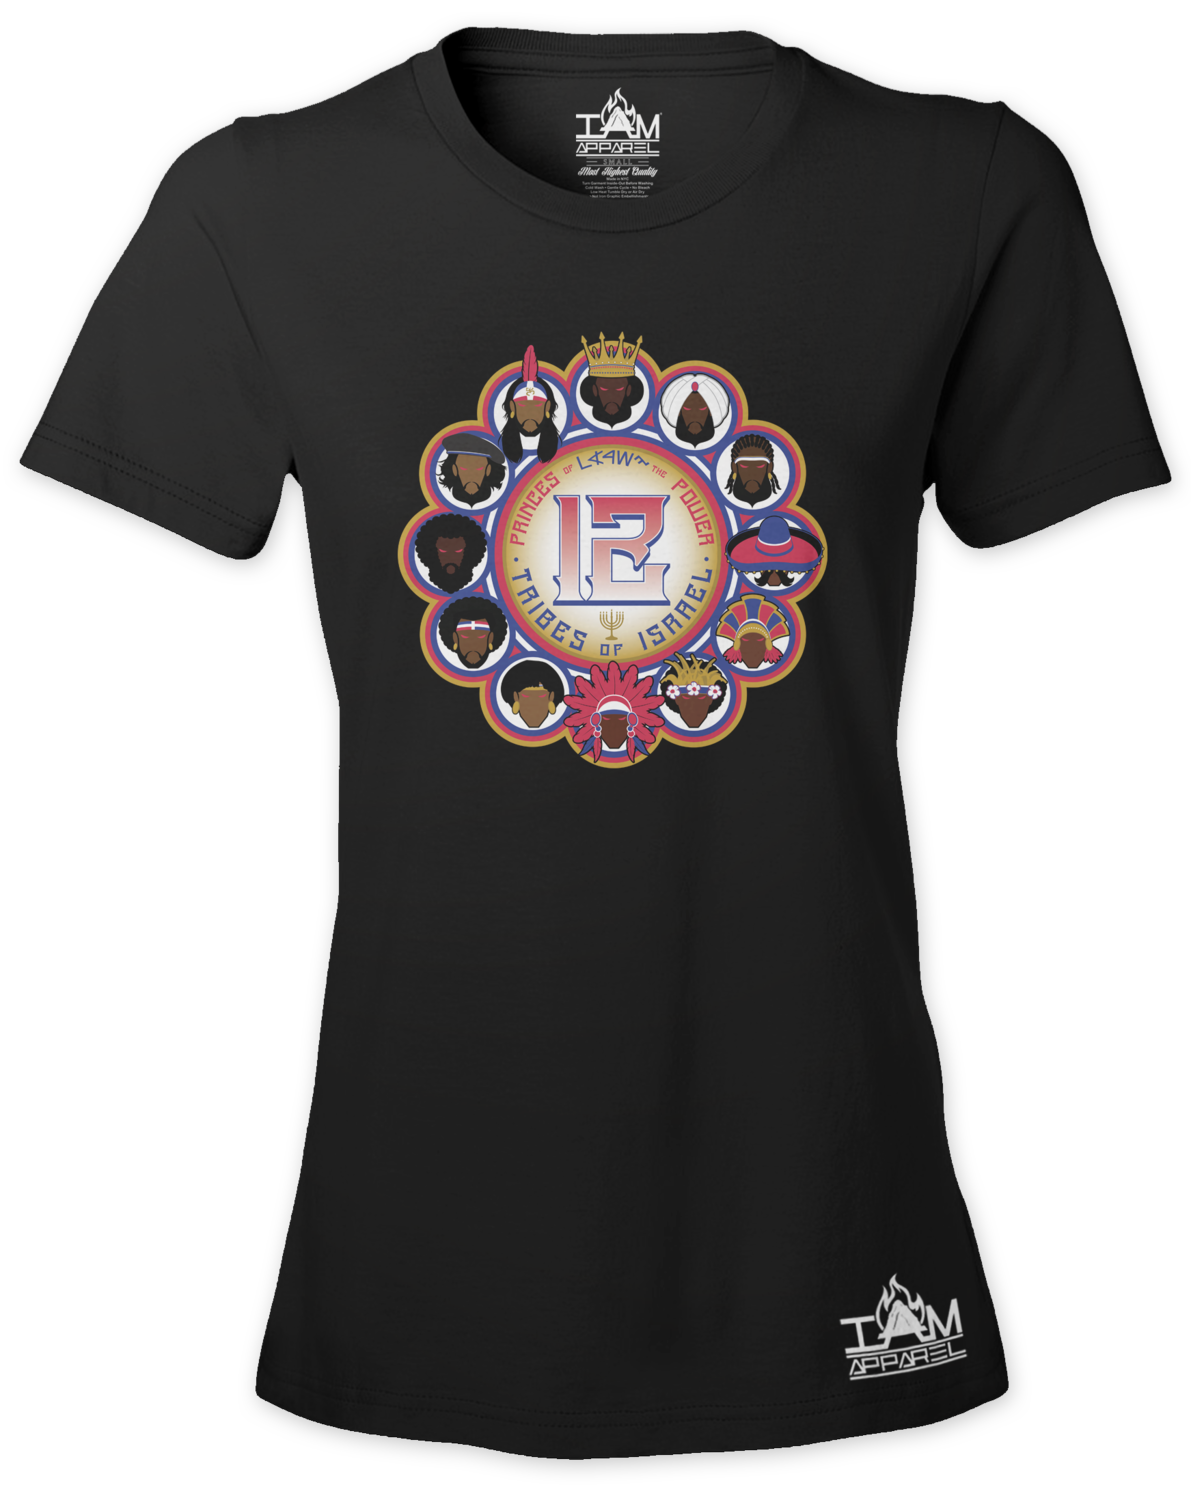 12 Tribes Image Woman's  Short Sleeved T-shirt